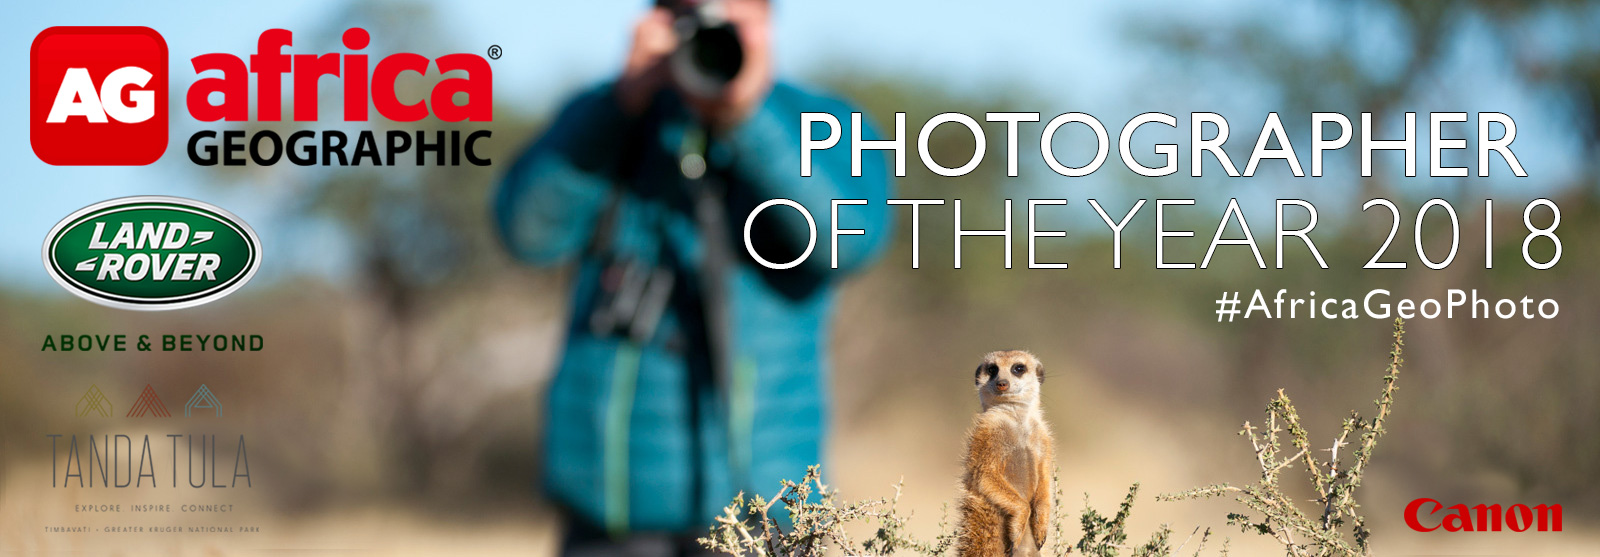 Photographer of the Year 2018